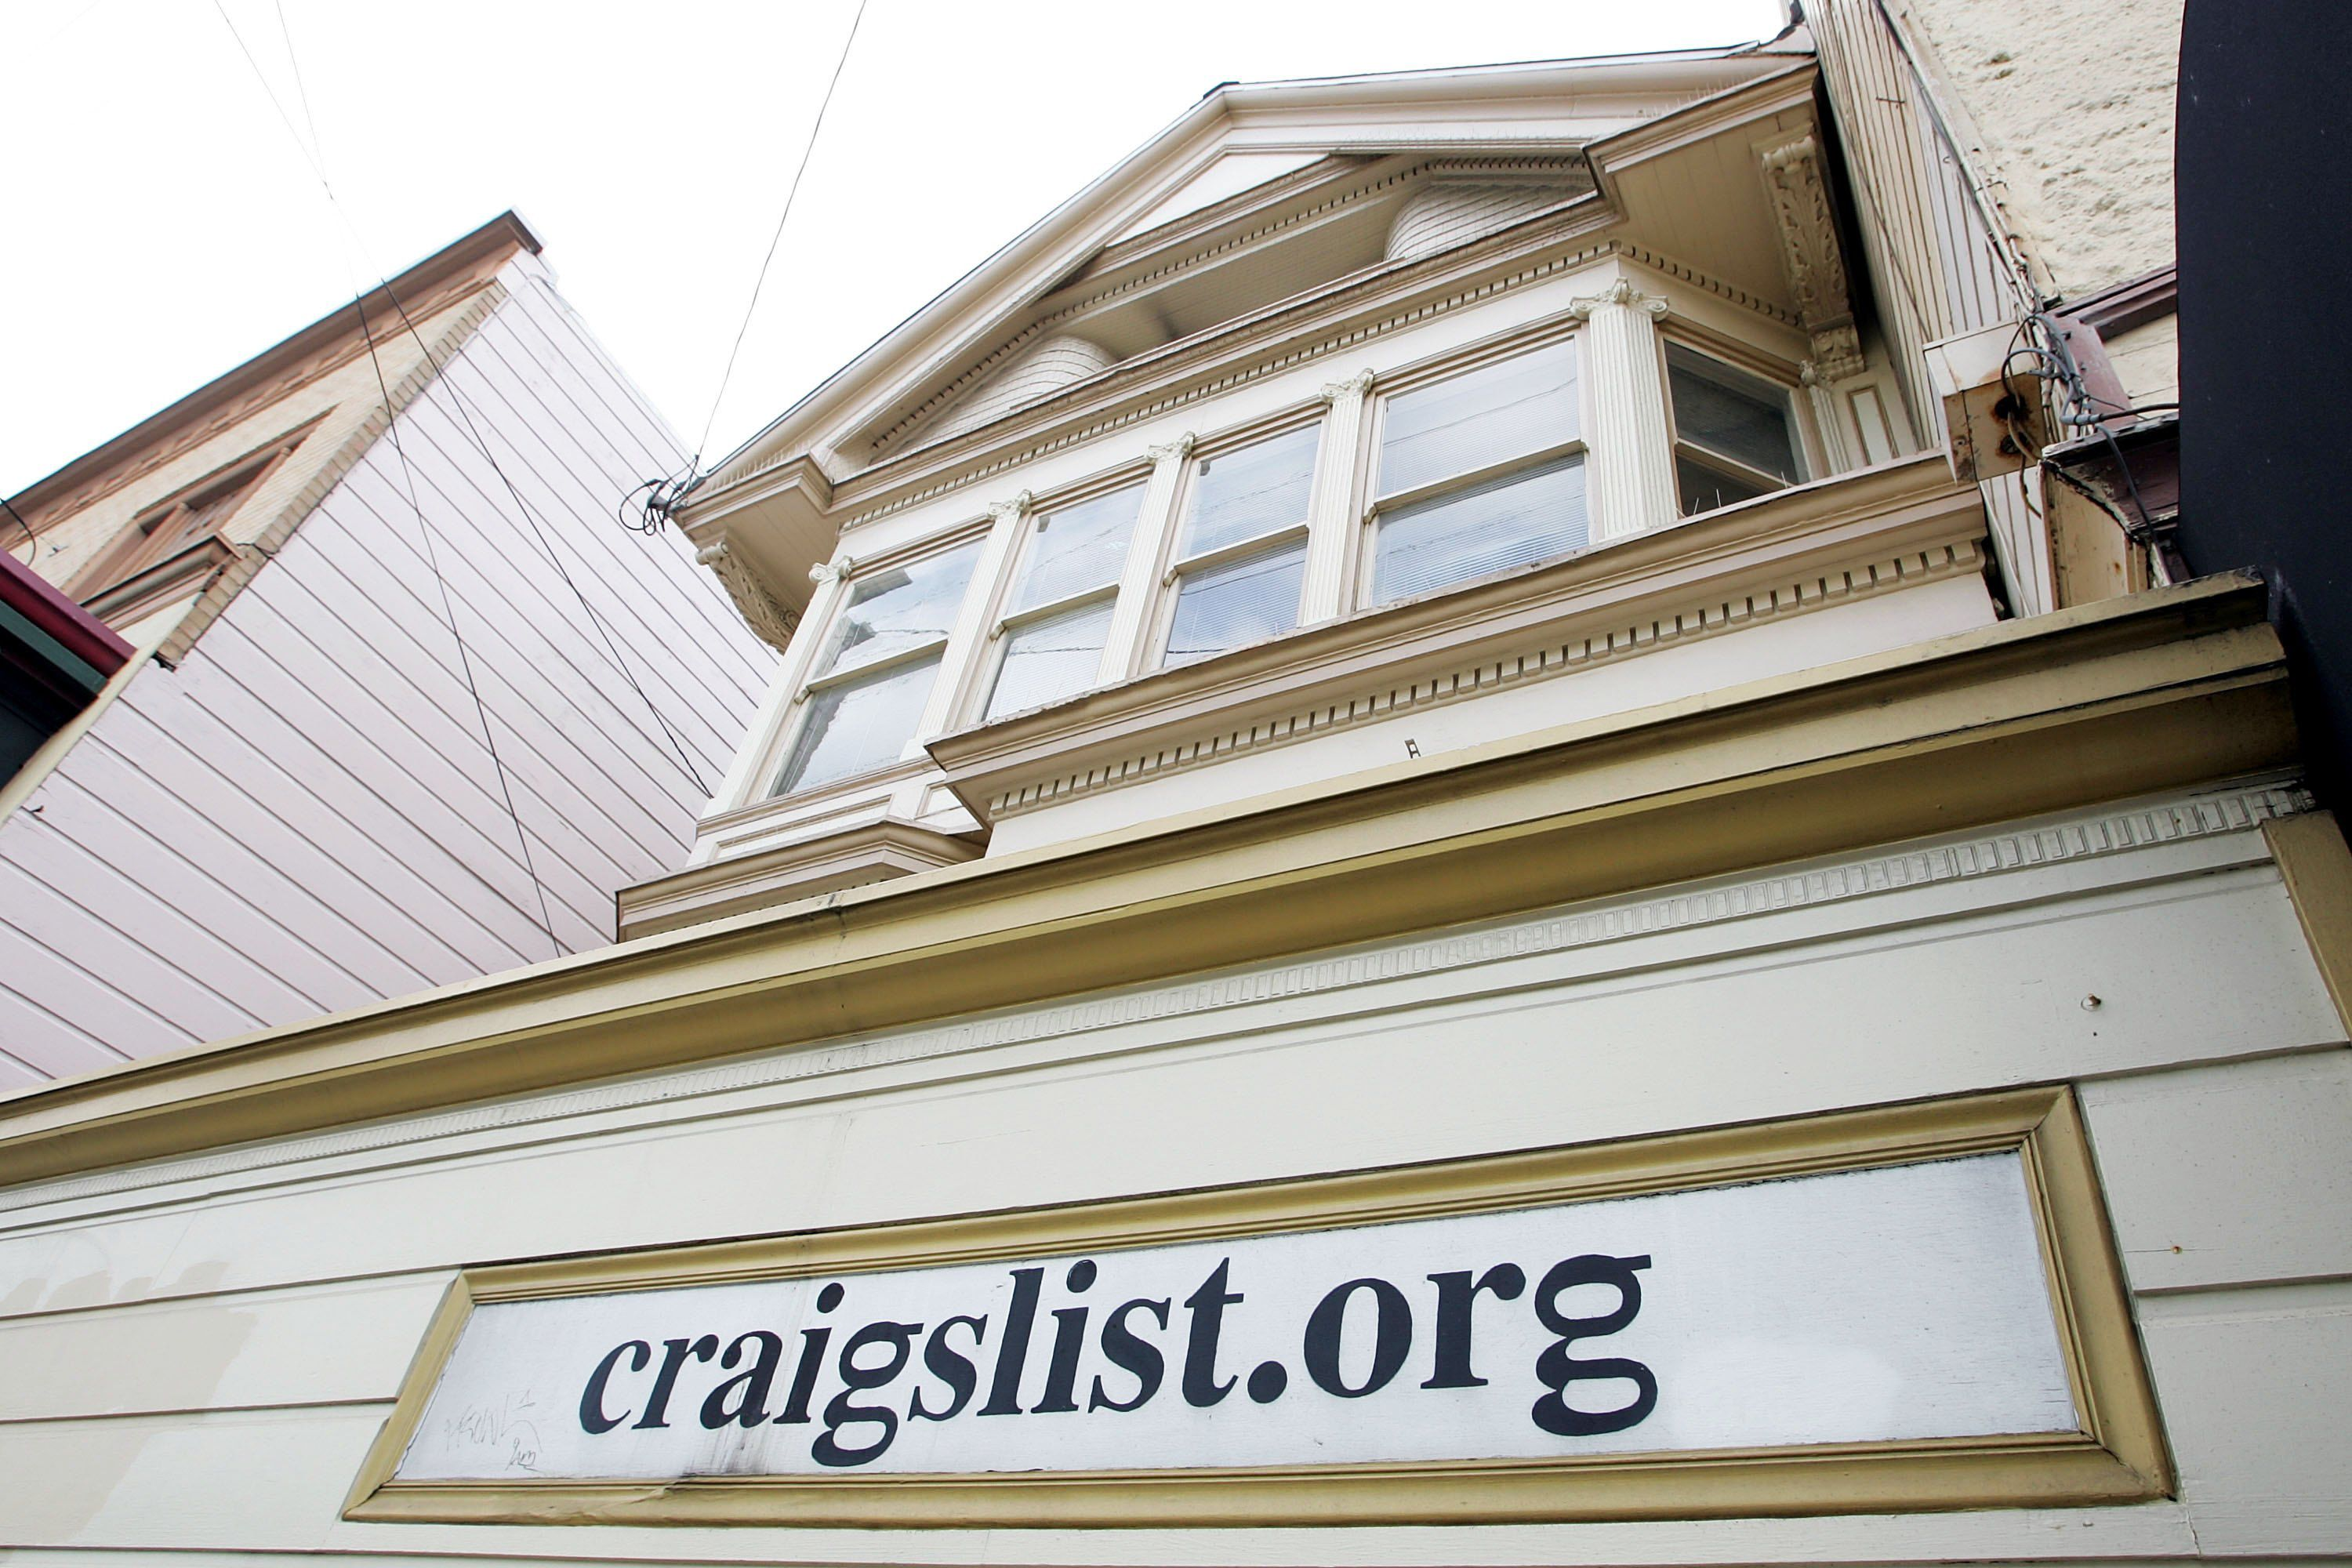 How to Find and Apply for Jobs on Craigslist